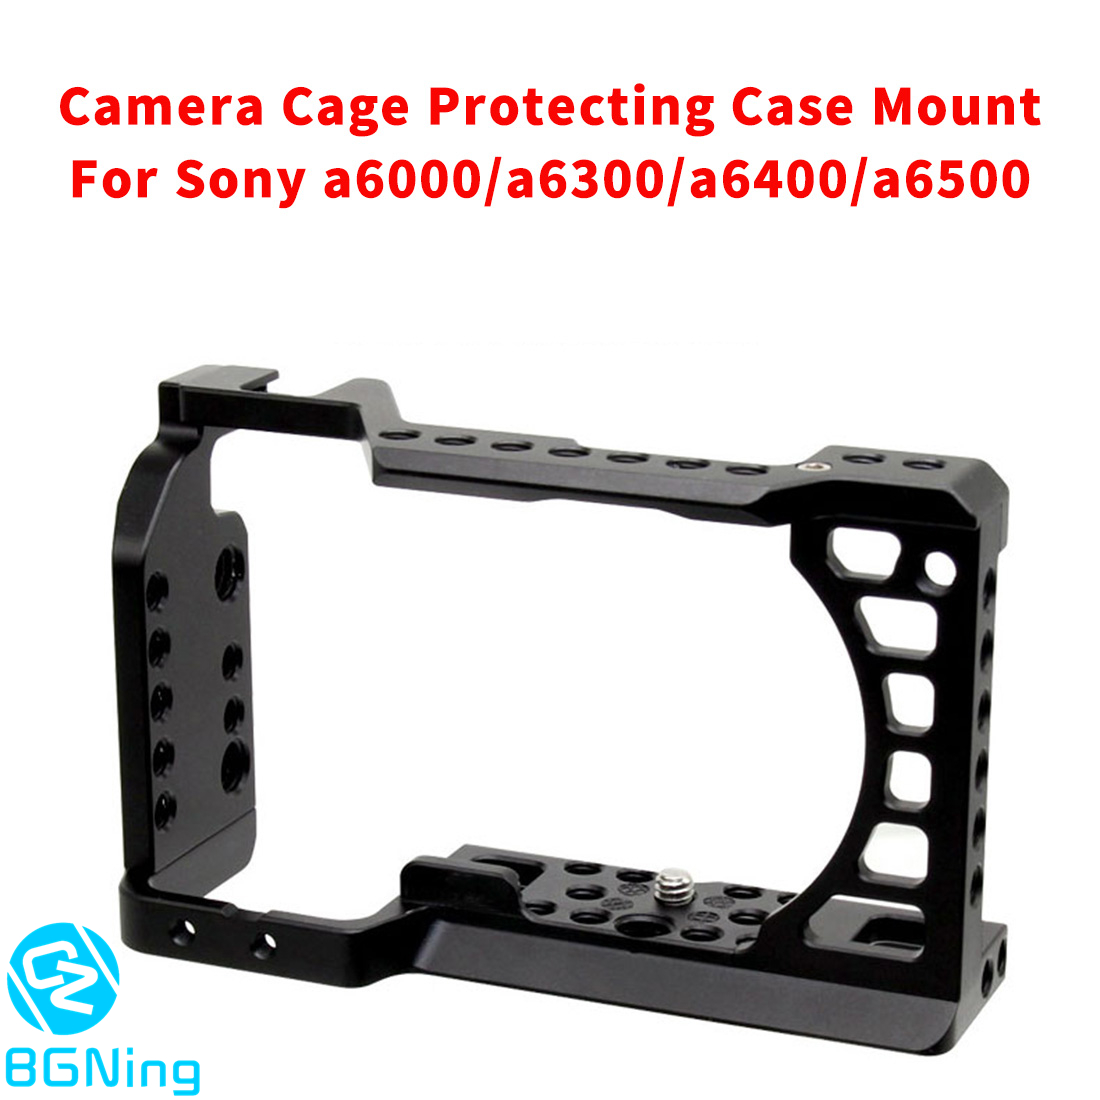 CNC Aluminum Camera Cage for SONY a6500/a6000/a6300/a6400/a6500 DSLR Protecting Case Mount Expansion Cover Quick-Rease Plate Kit